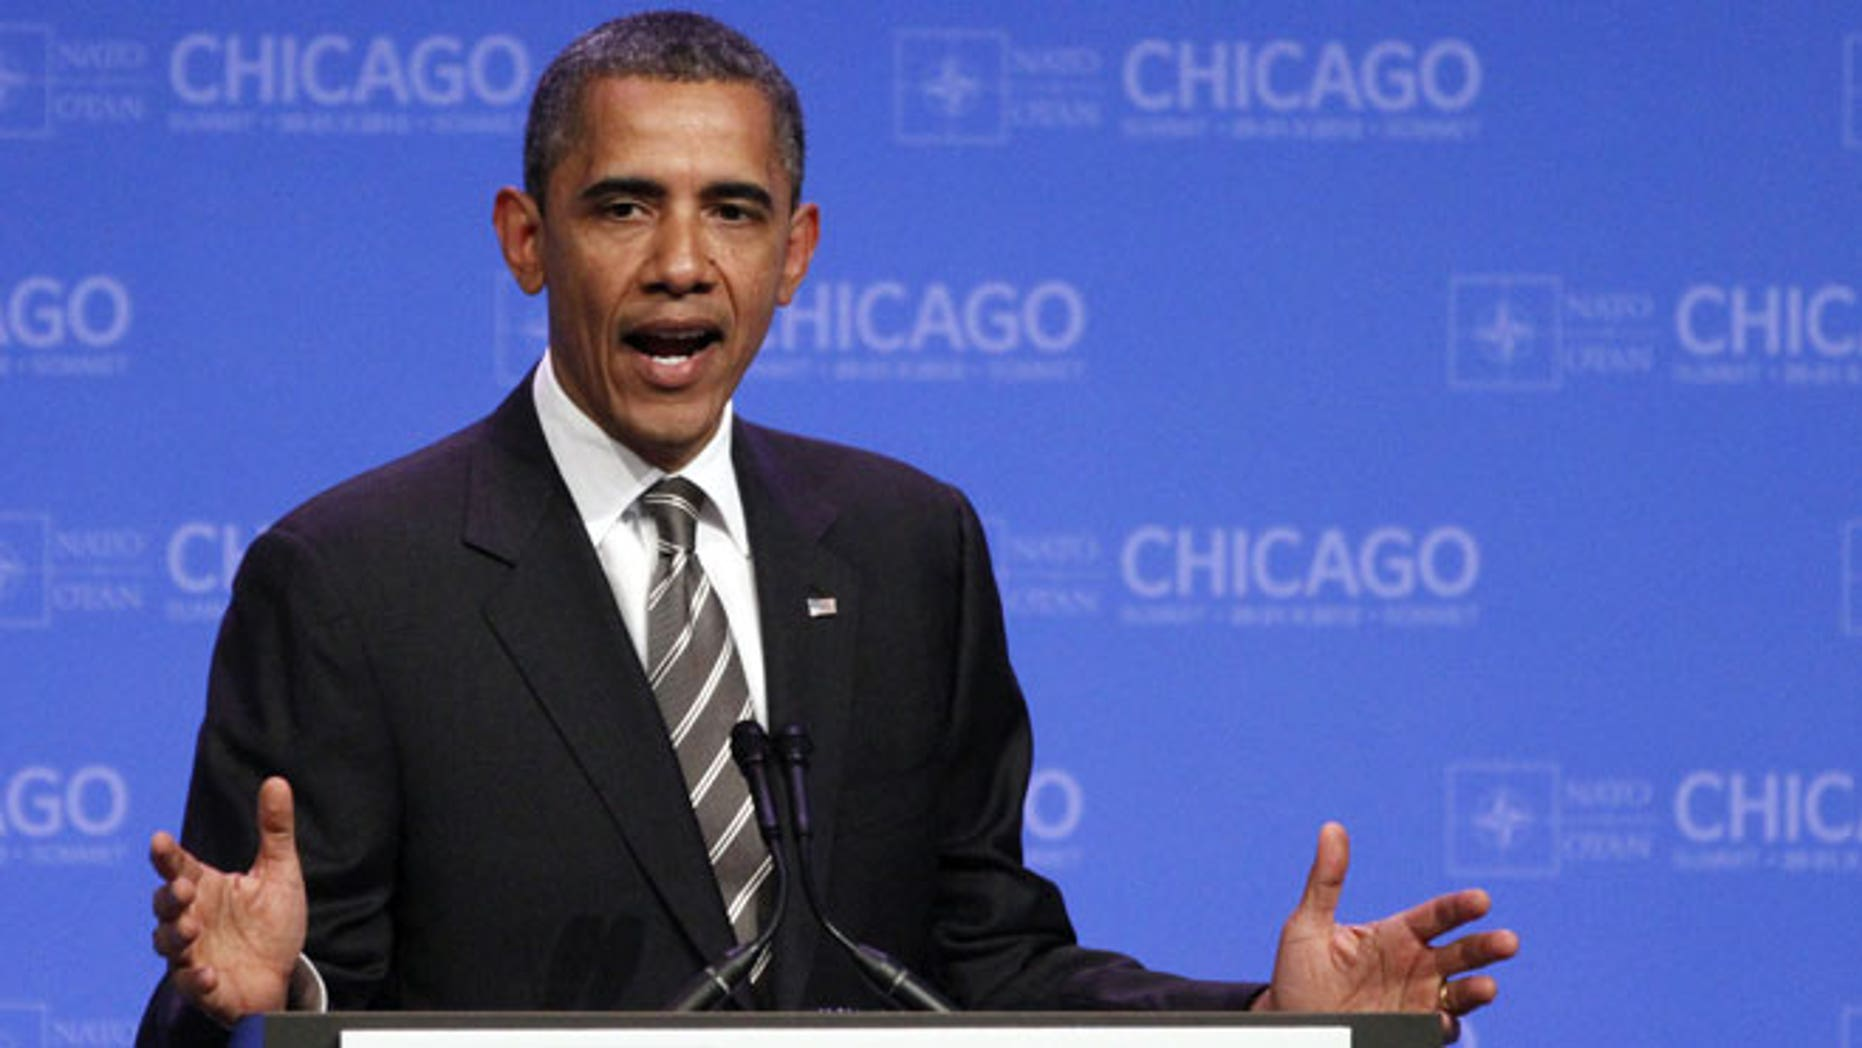 May 21, 2012: President Barack Obama speaks at a news conference at the NATO Summit in Chicago.